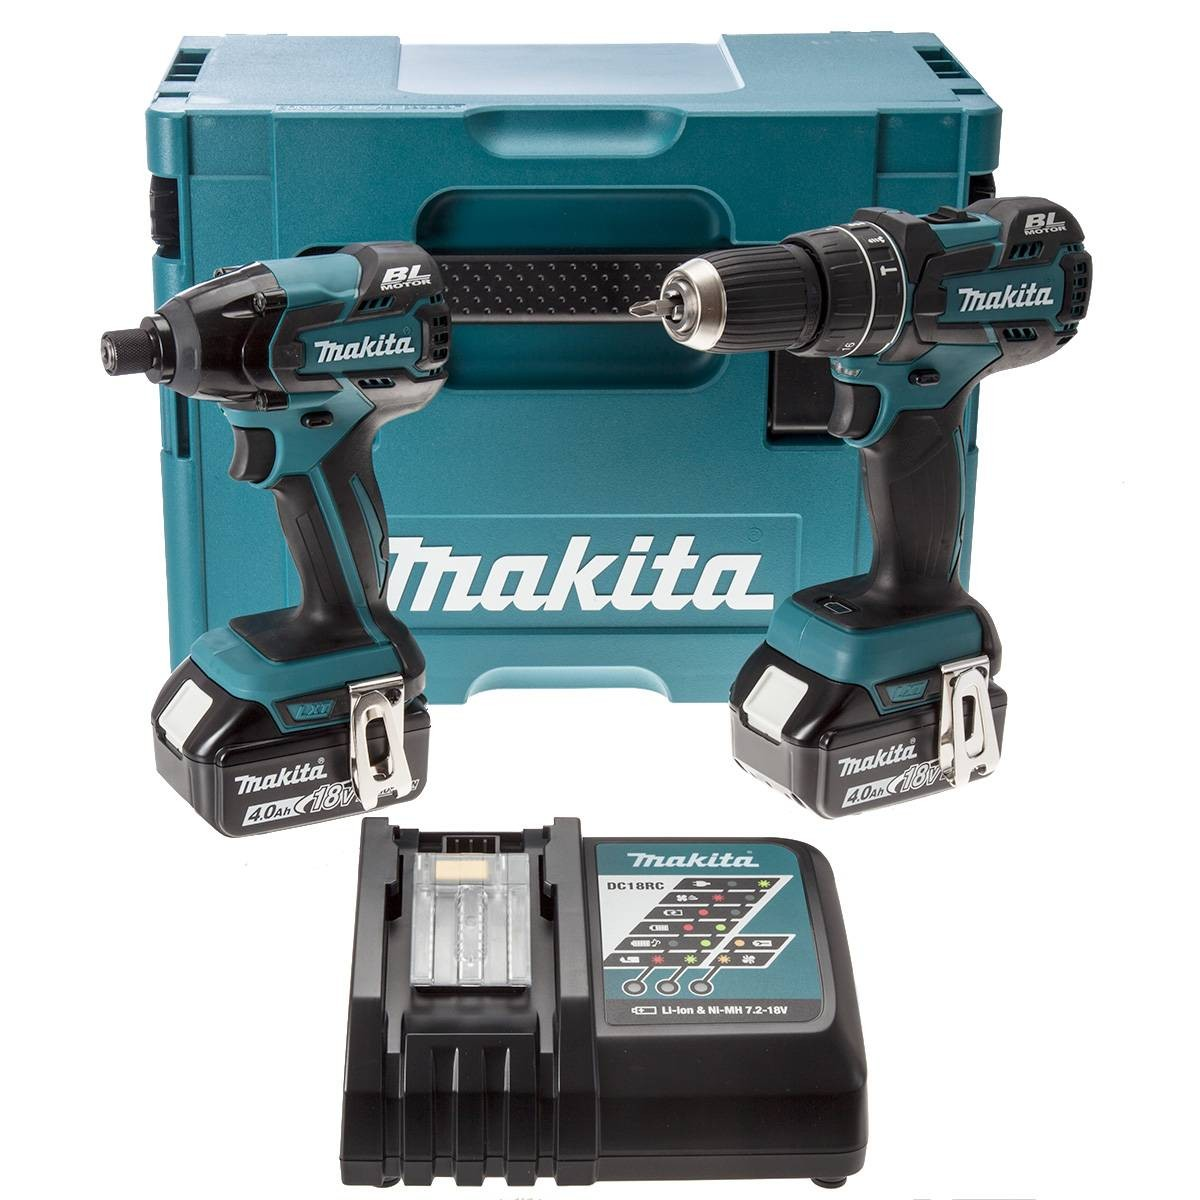 Makita DLX2002MJ 18v Li-ion Brushless Twin Kit Inc. 2 x 4.0Ah Batts